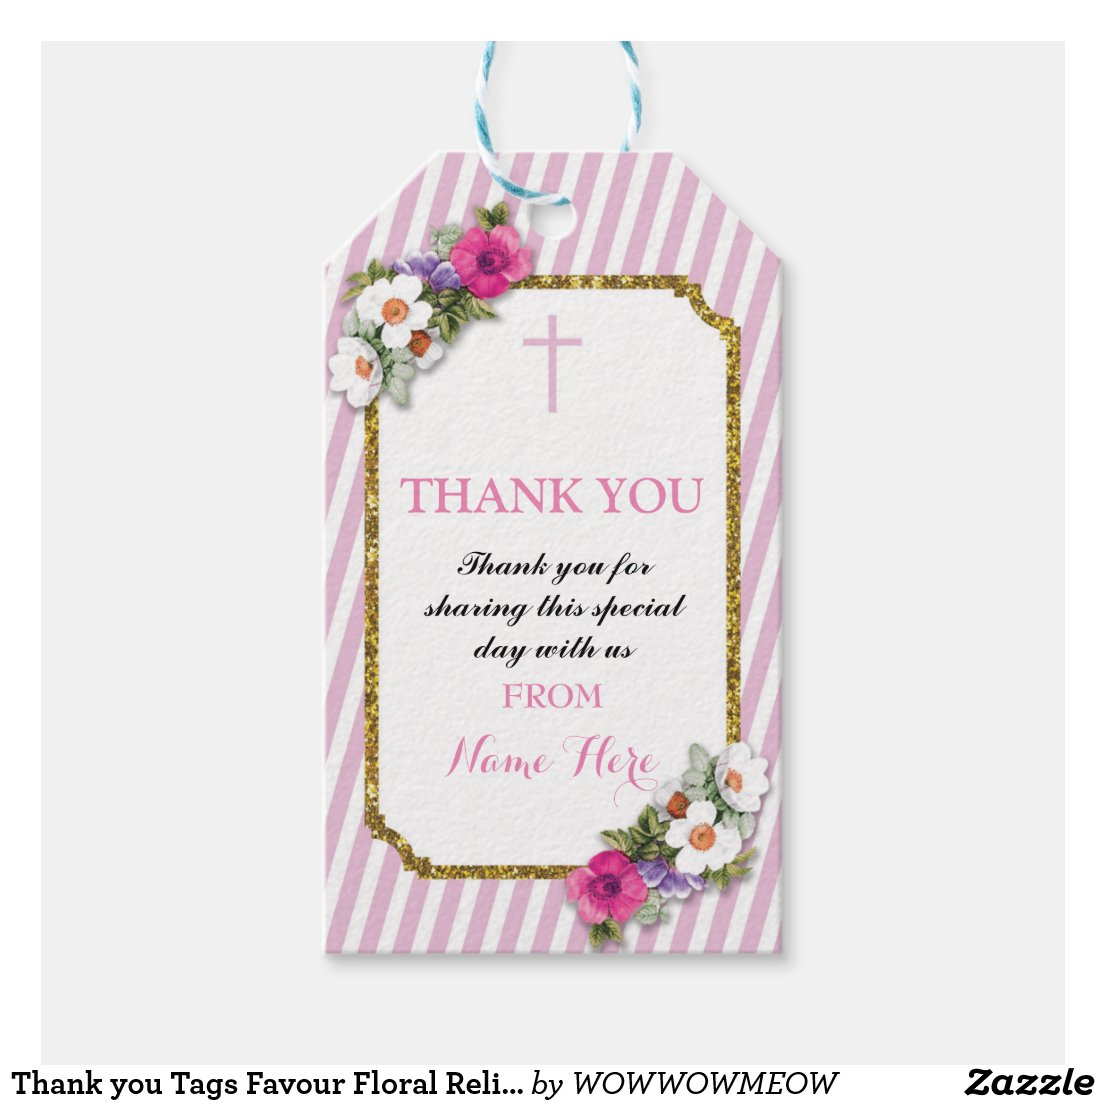 Thank you Tags Favour Floral Religious Pink